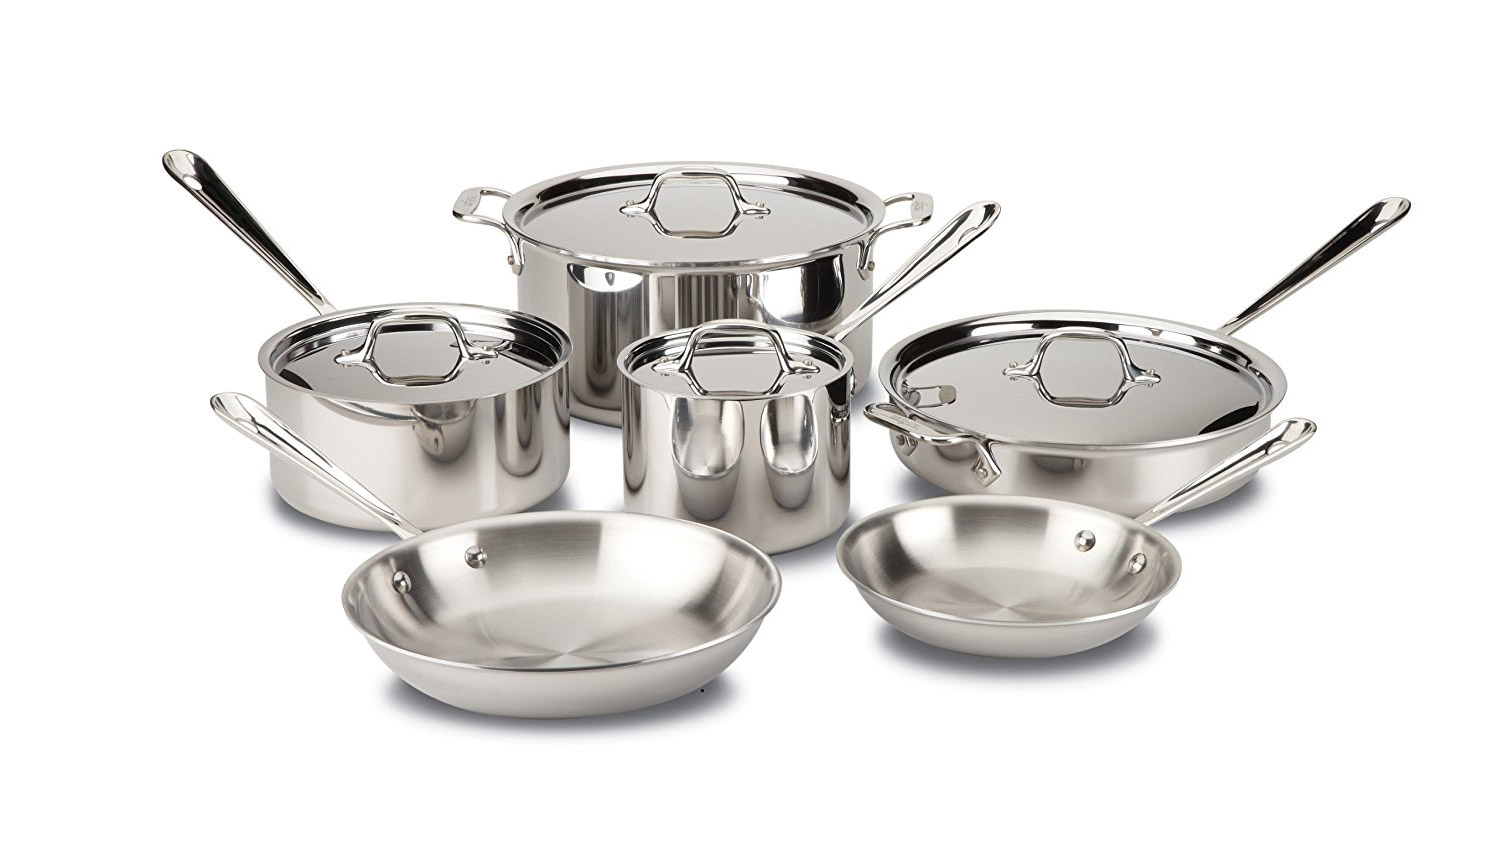 All-Clad Stainless Steel Tri-Ply Bonded Dishwasher Safe Cookware Set